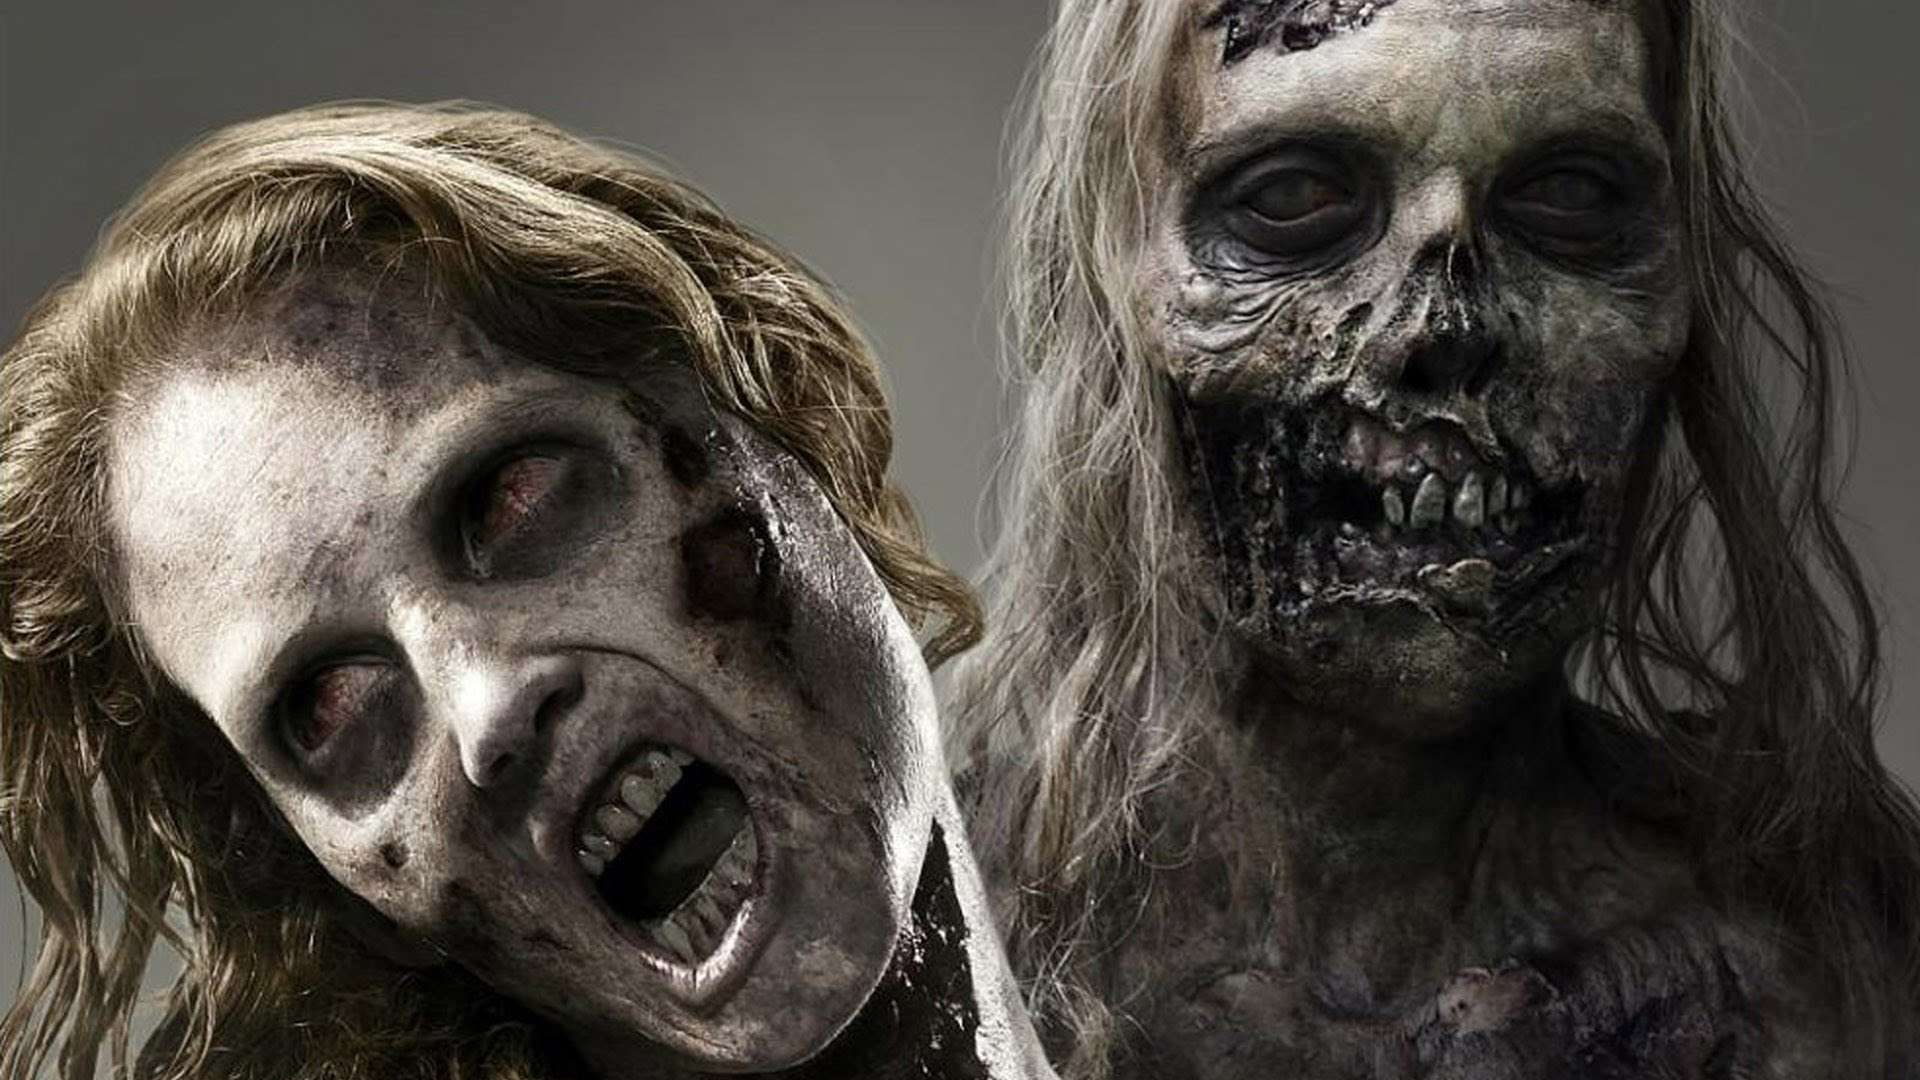 The Walking Dead coming to HHN26: 3 ways for it to not suck